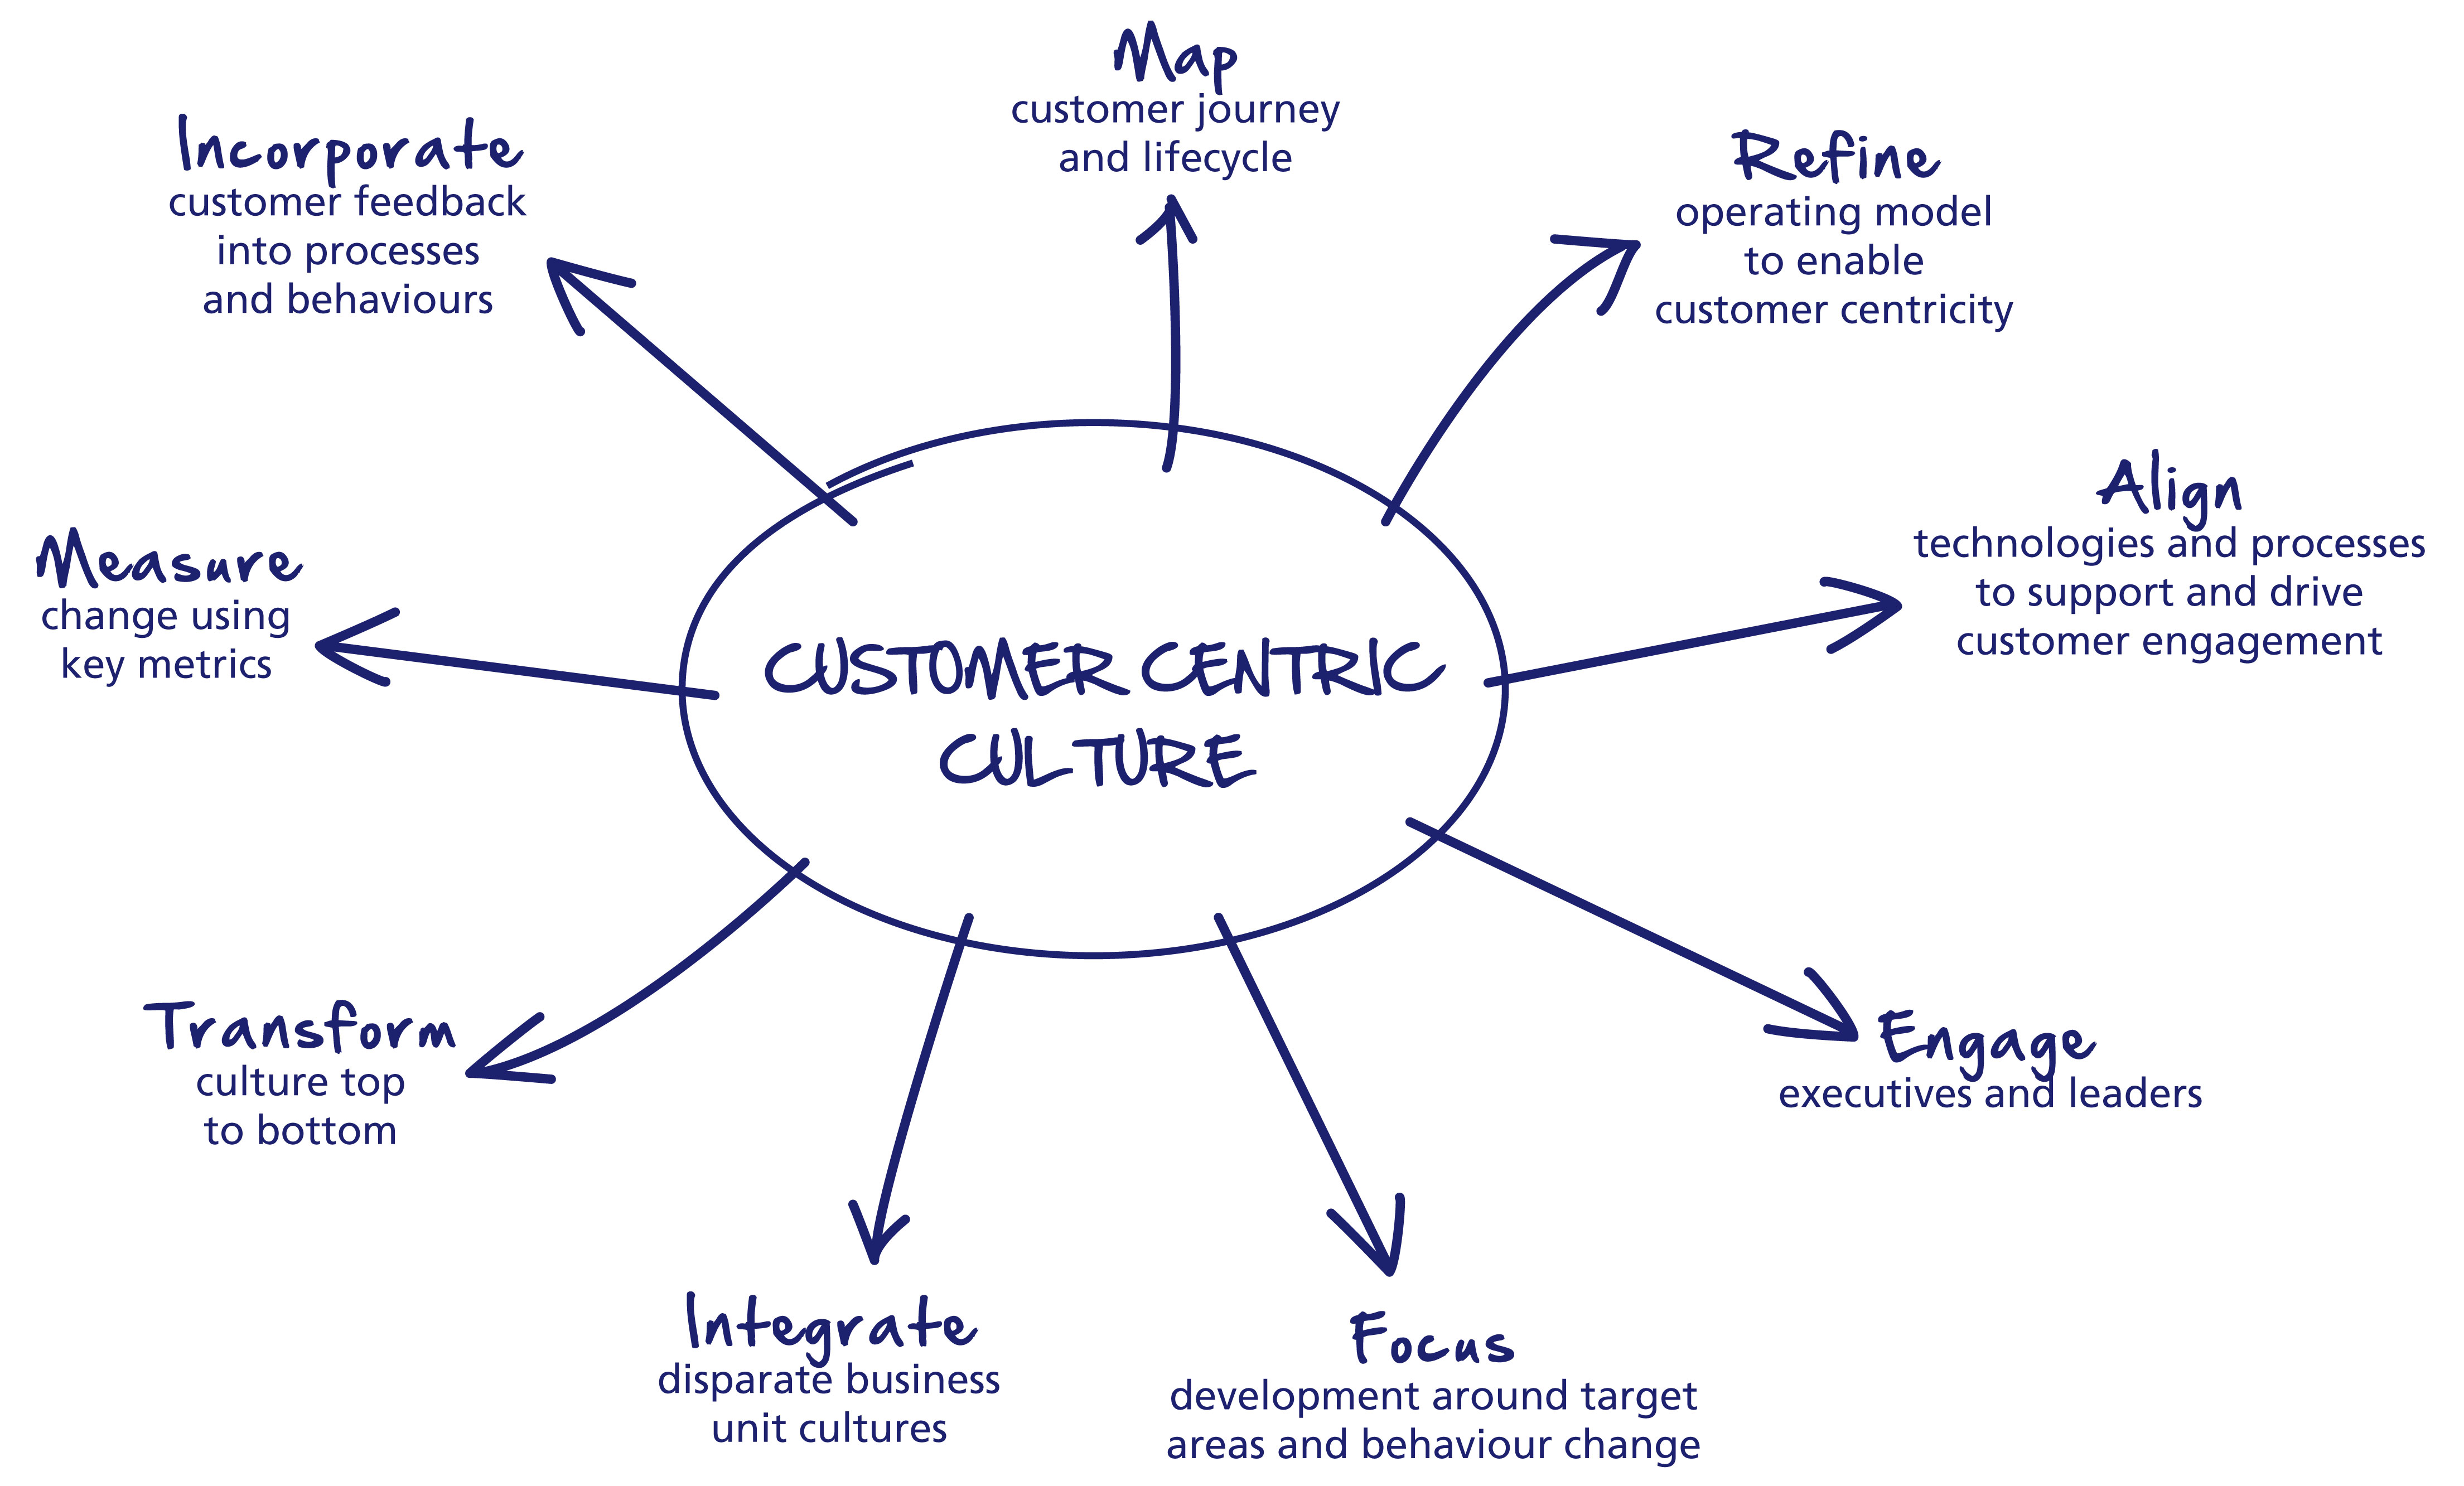 best buy co inc customer centricity If you want to see an example on how to use this template, please check: corporate governance best buy co inc sustainable customer centricity model.